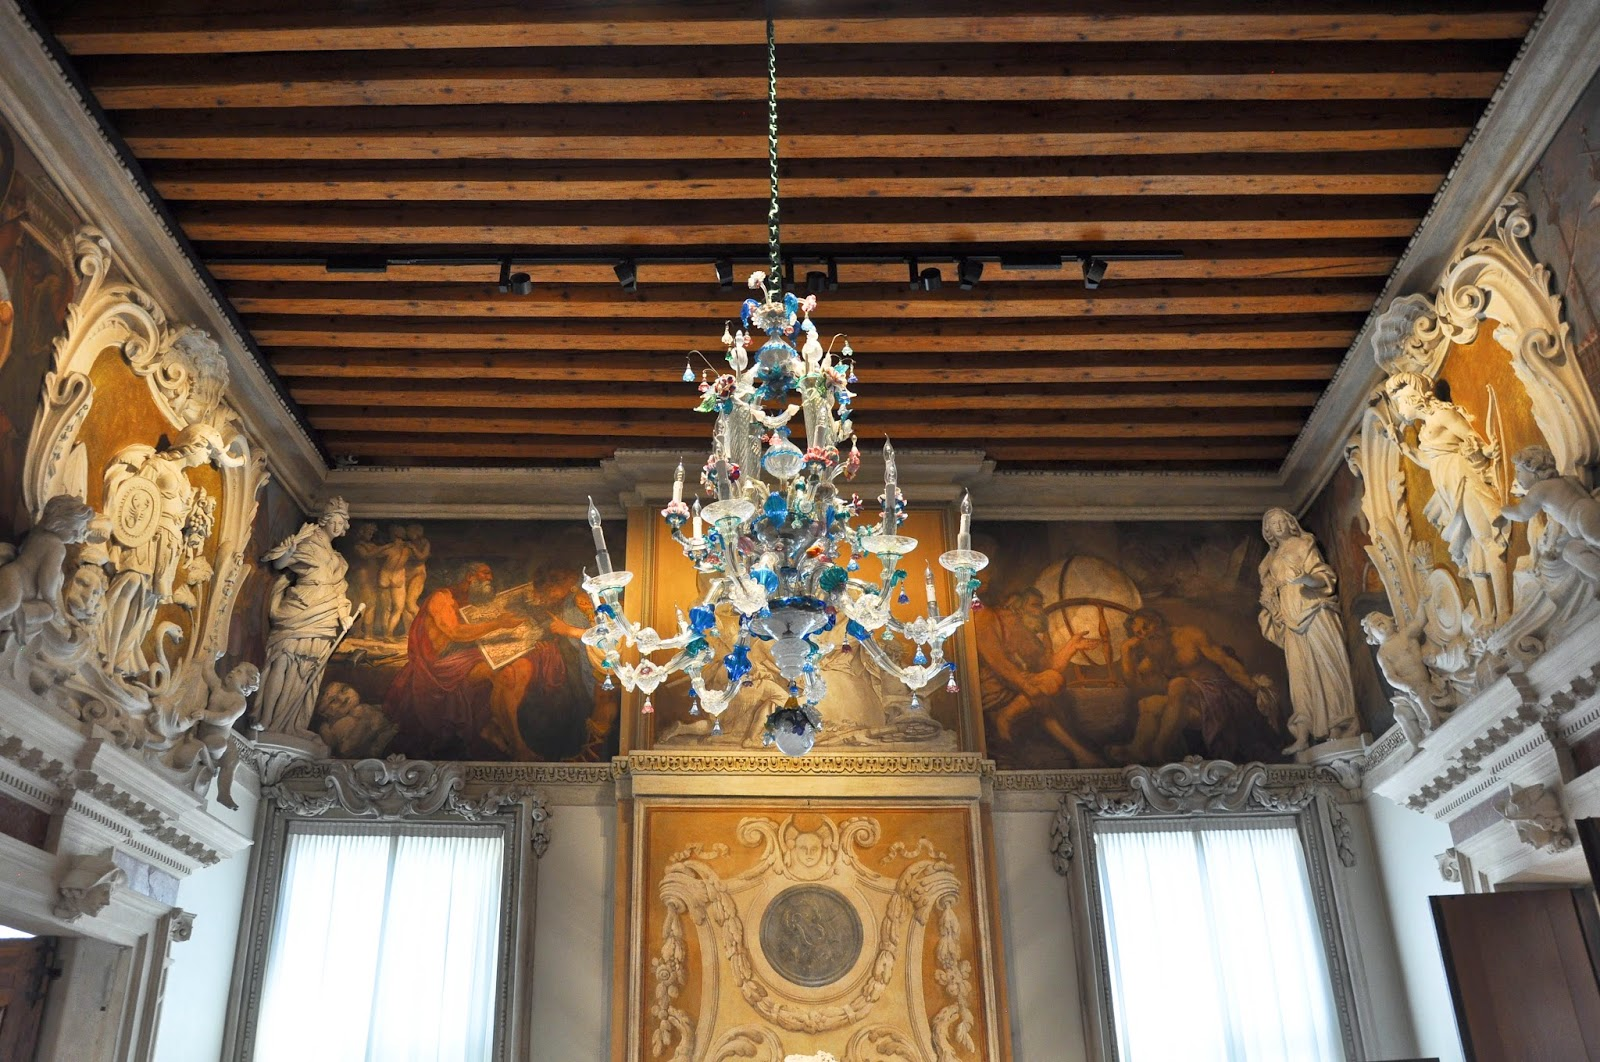 Murano glass chandelier and lavish bas-relives and frescos, Gallerie D'Italia in Palazzo Leoni Montanari, Vicenza, Italy